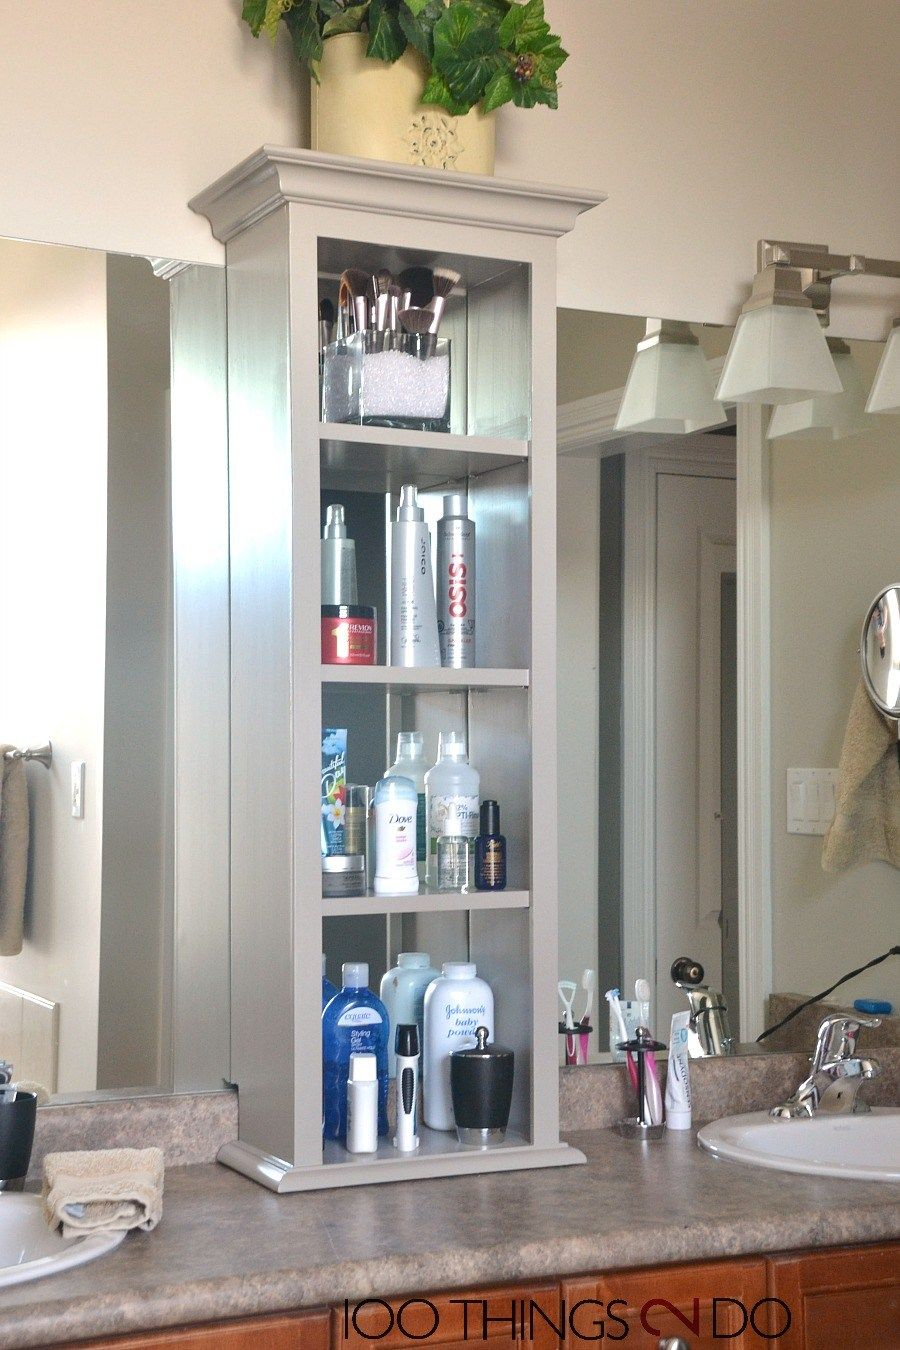 Fancy Bathroom Storage Tower | Pinterest | Bathroom Storage, Bathroom with Bathroom Vanity Storage